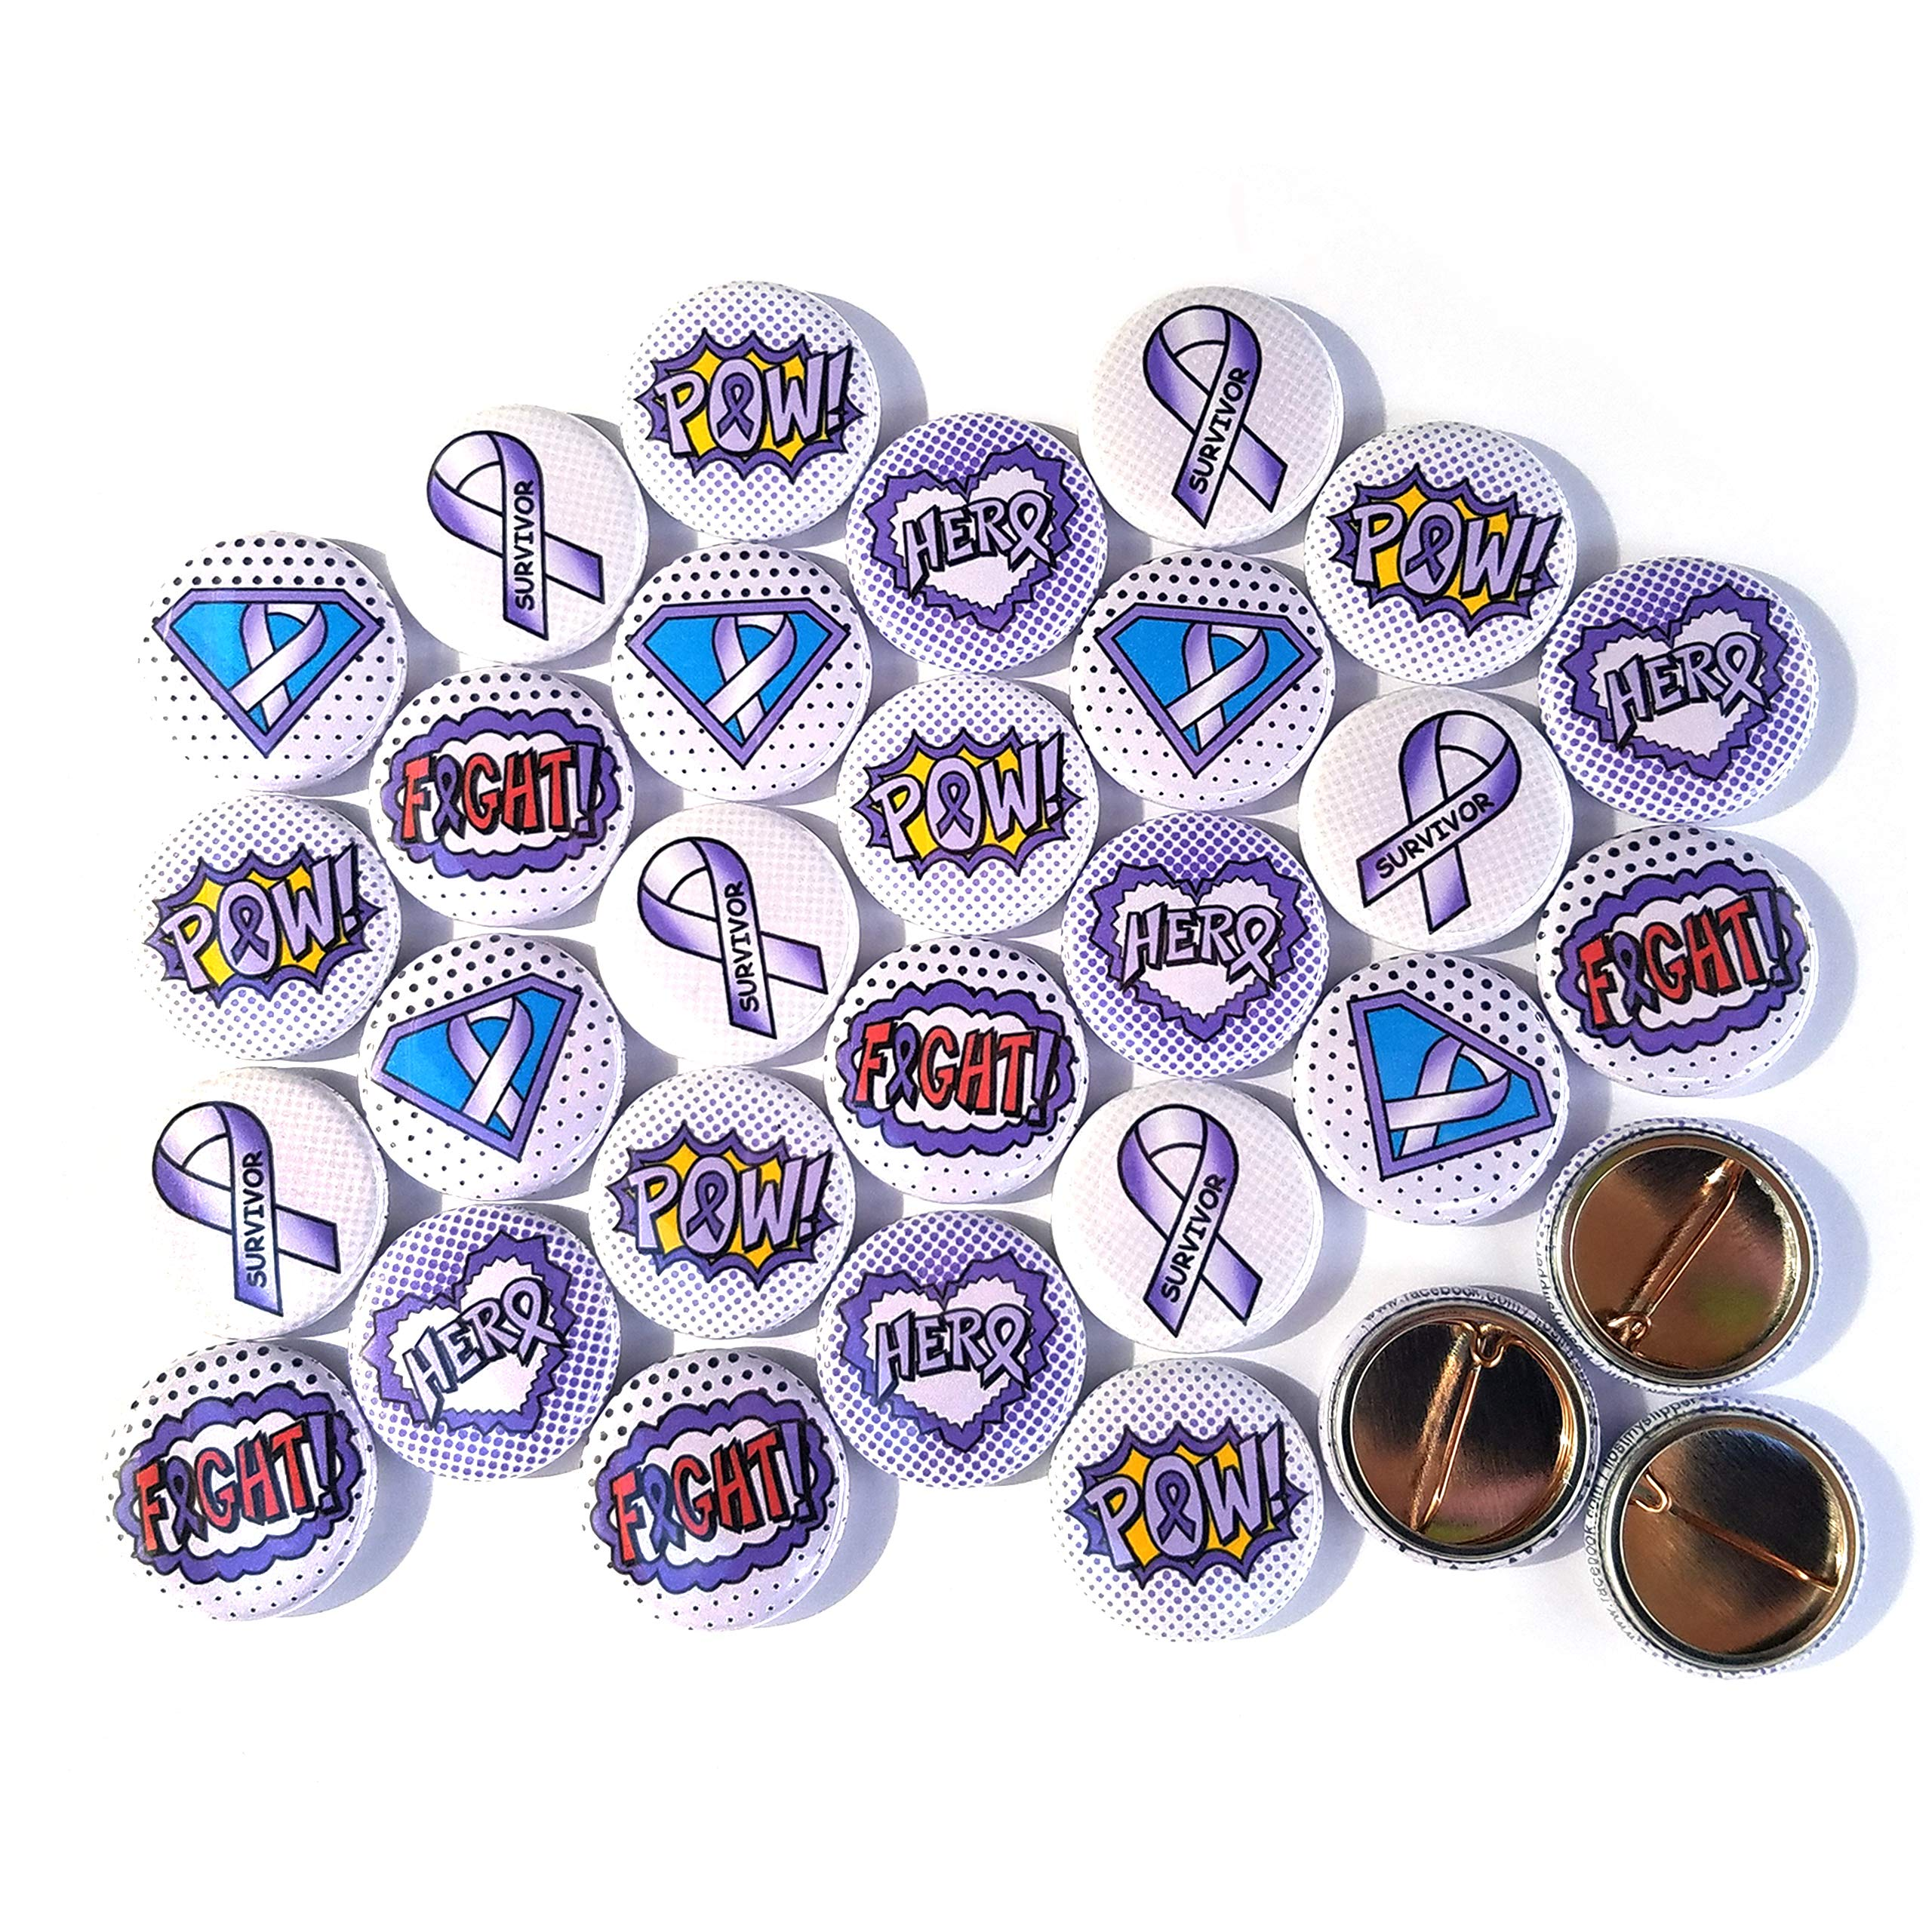 Superhero Awareness Pins - LAVENDER. All Cancer Awareness, Craniosynostosis, Epilepsy, Gynecological Cancer, Hypokalemic Periodic Paralysis, Infantile Spasms, Rett Syndrome. (1'' Pins, 30 Piece Set) by ILMS (Image #1)